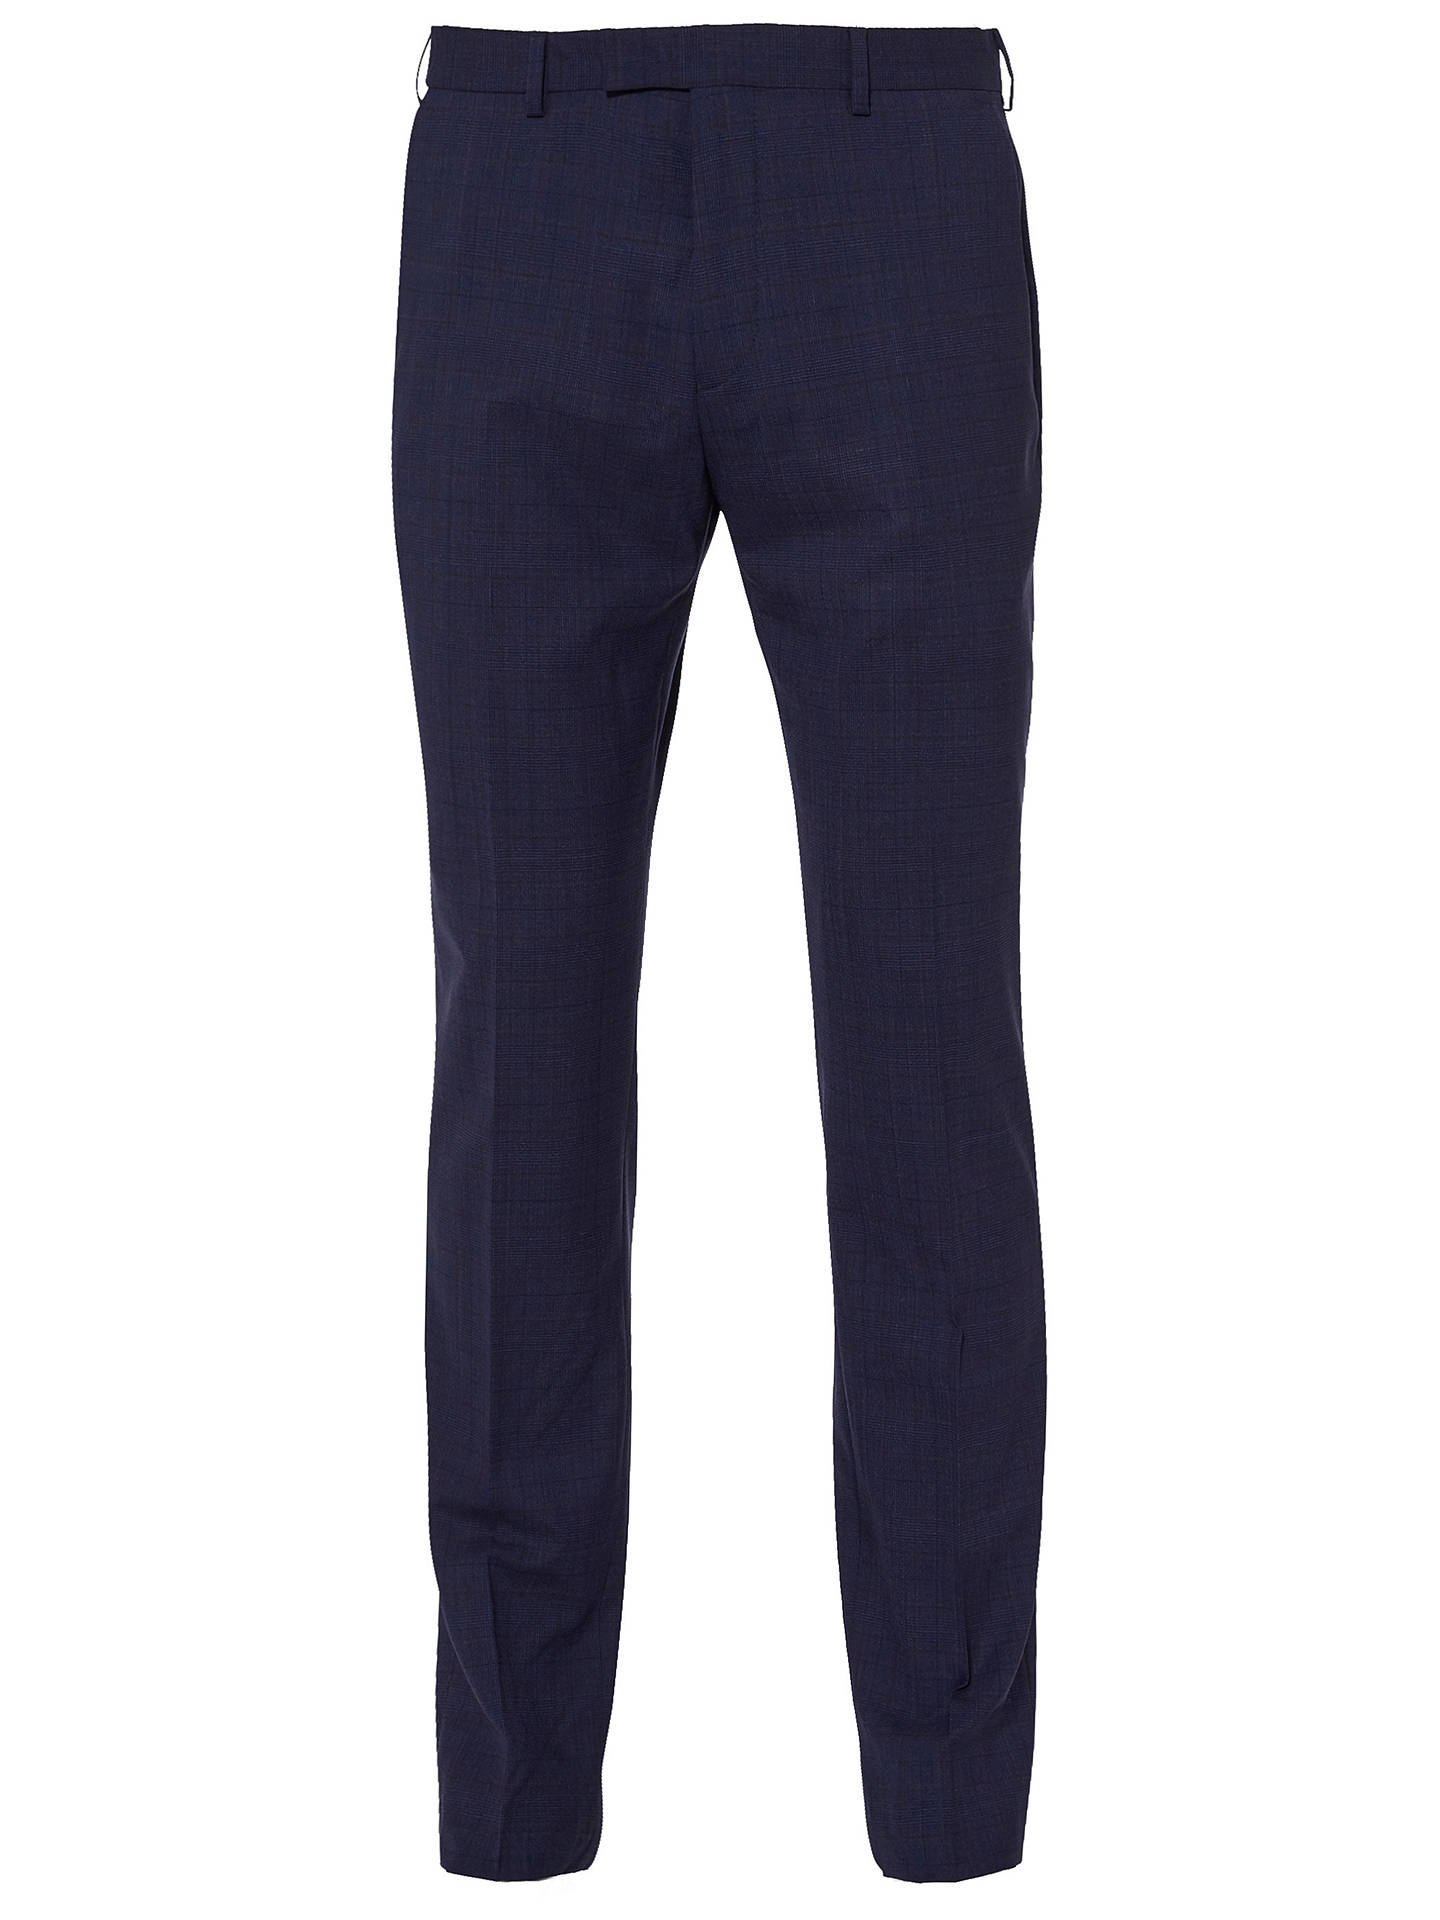 BuyTed Baker Vienat Check Tailored Suit Trousers, Blue, 32S Online at johnlewis.com